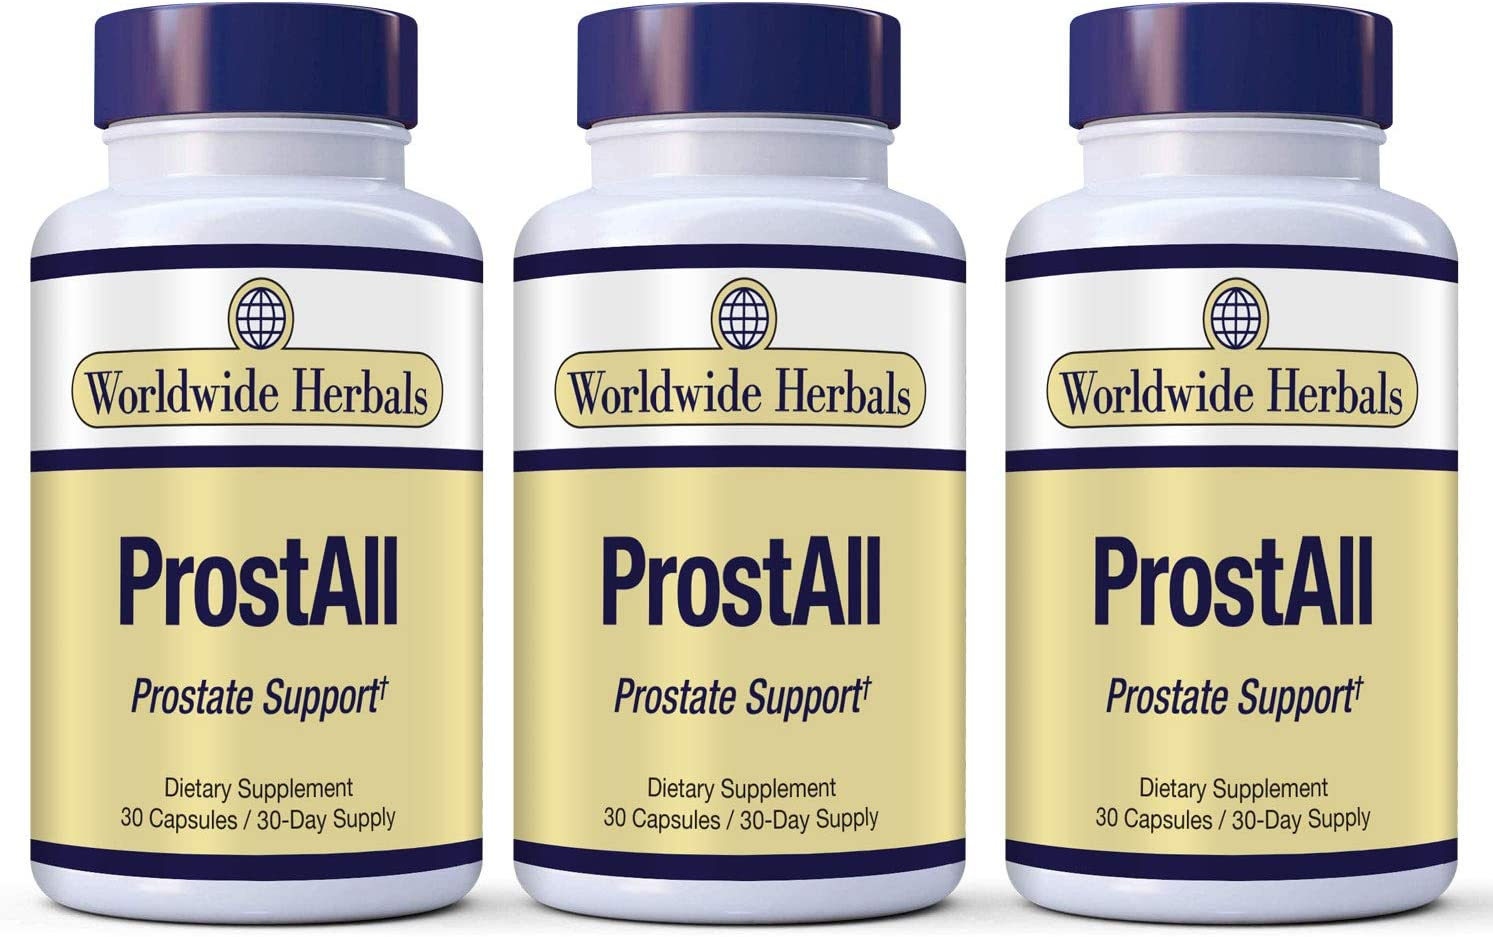 High order ProstAll Men's Prostate Supplement A online shopping w Supports Healthy